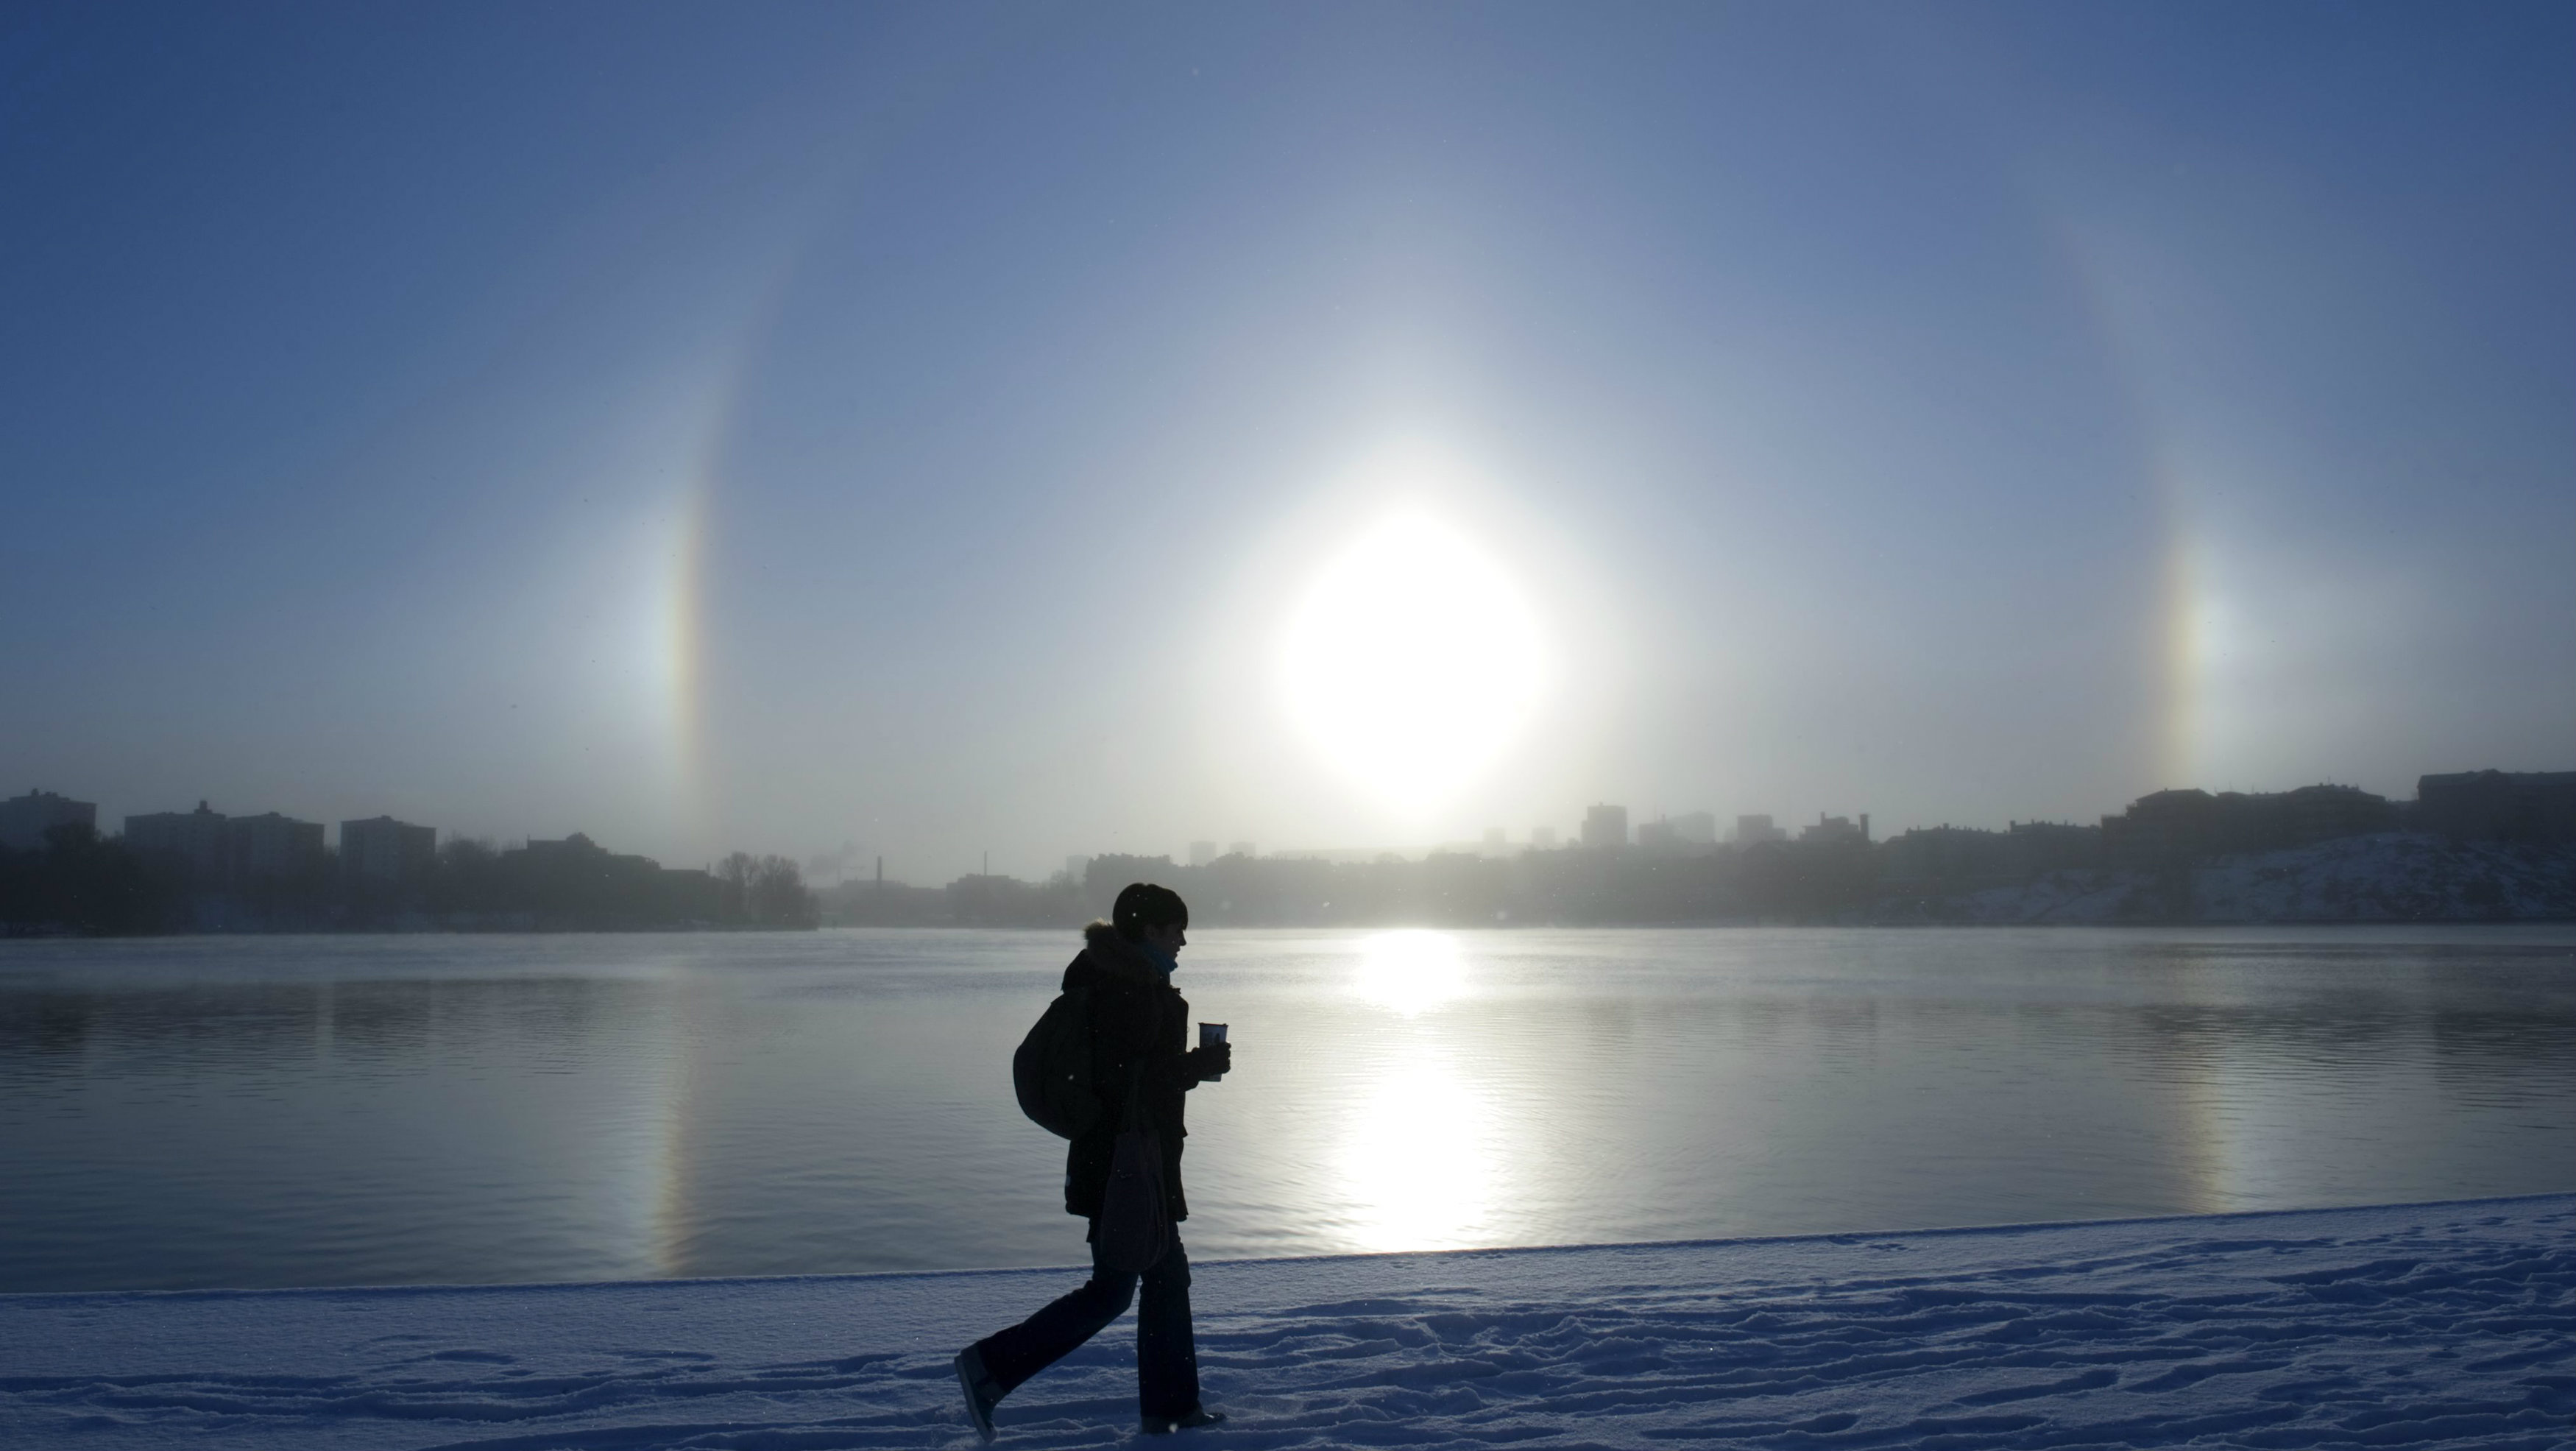 A parhelion (sundog) combined with a halo is seen over Lake Malaren in central Stockholm.